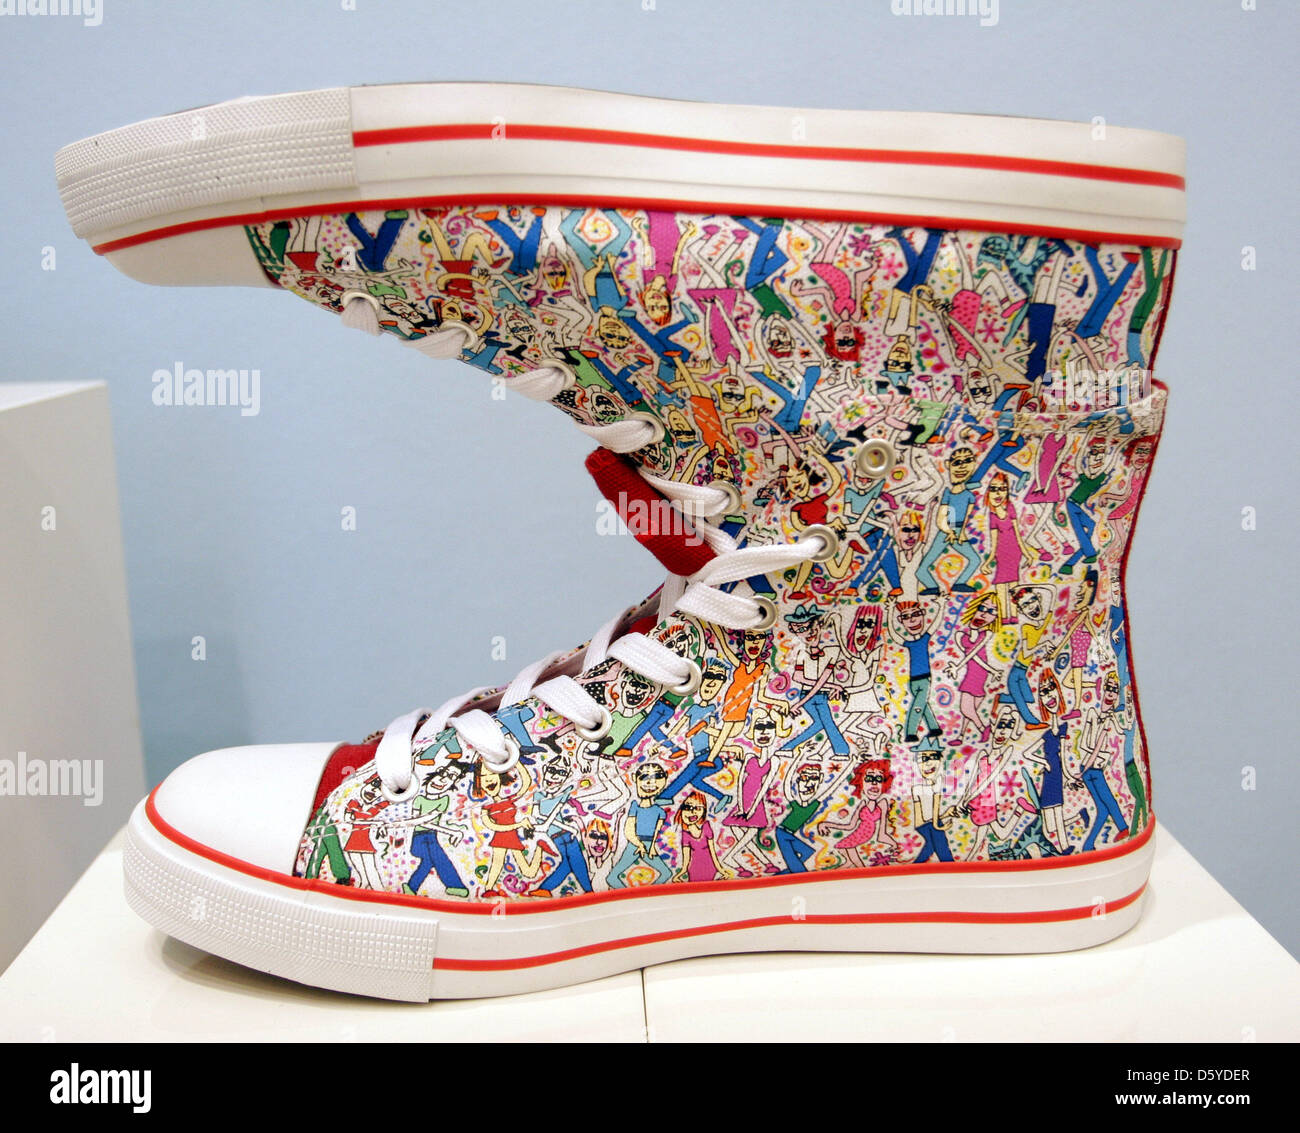 shoes designed by us american james rizzi for sports equipment manufacturer fila are on display at